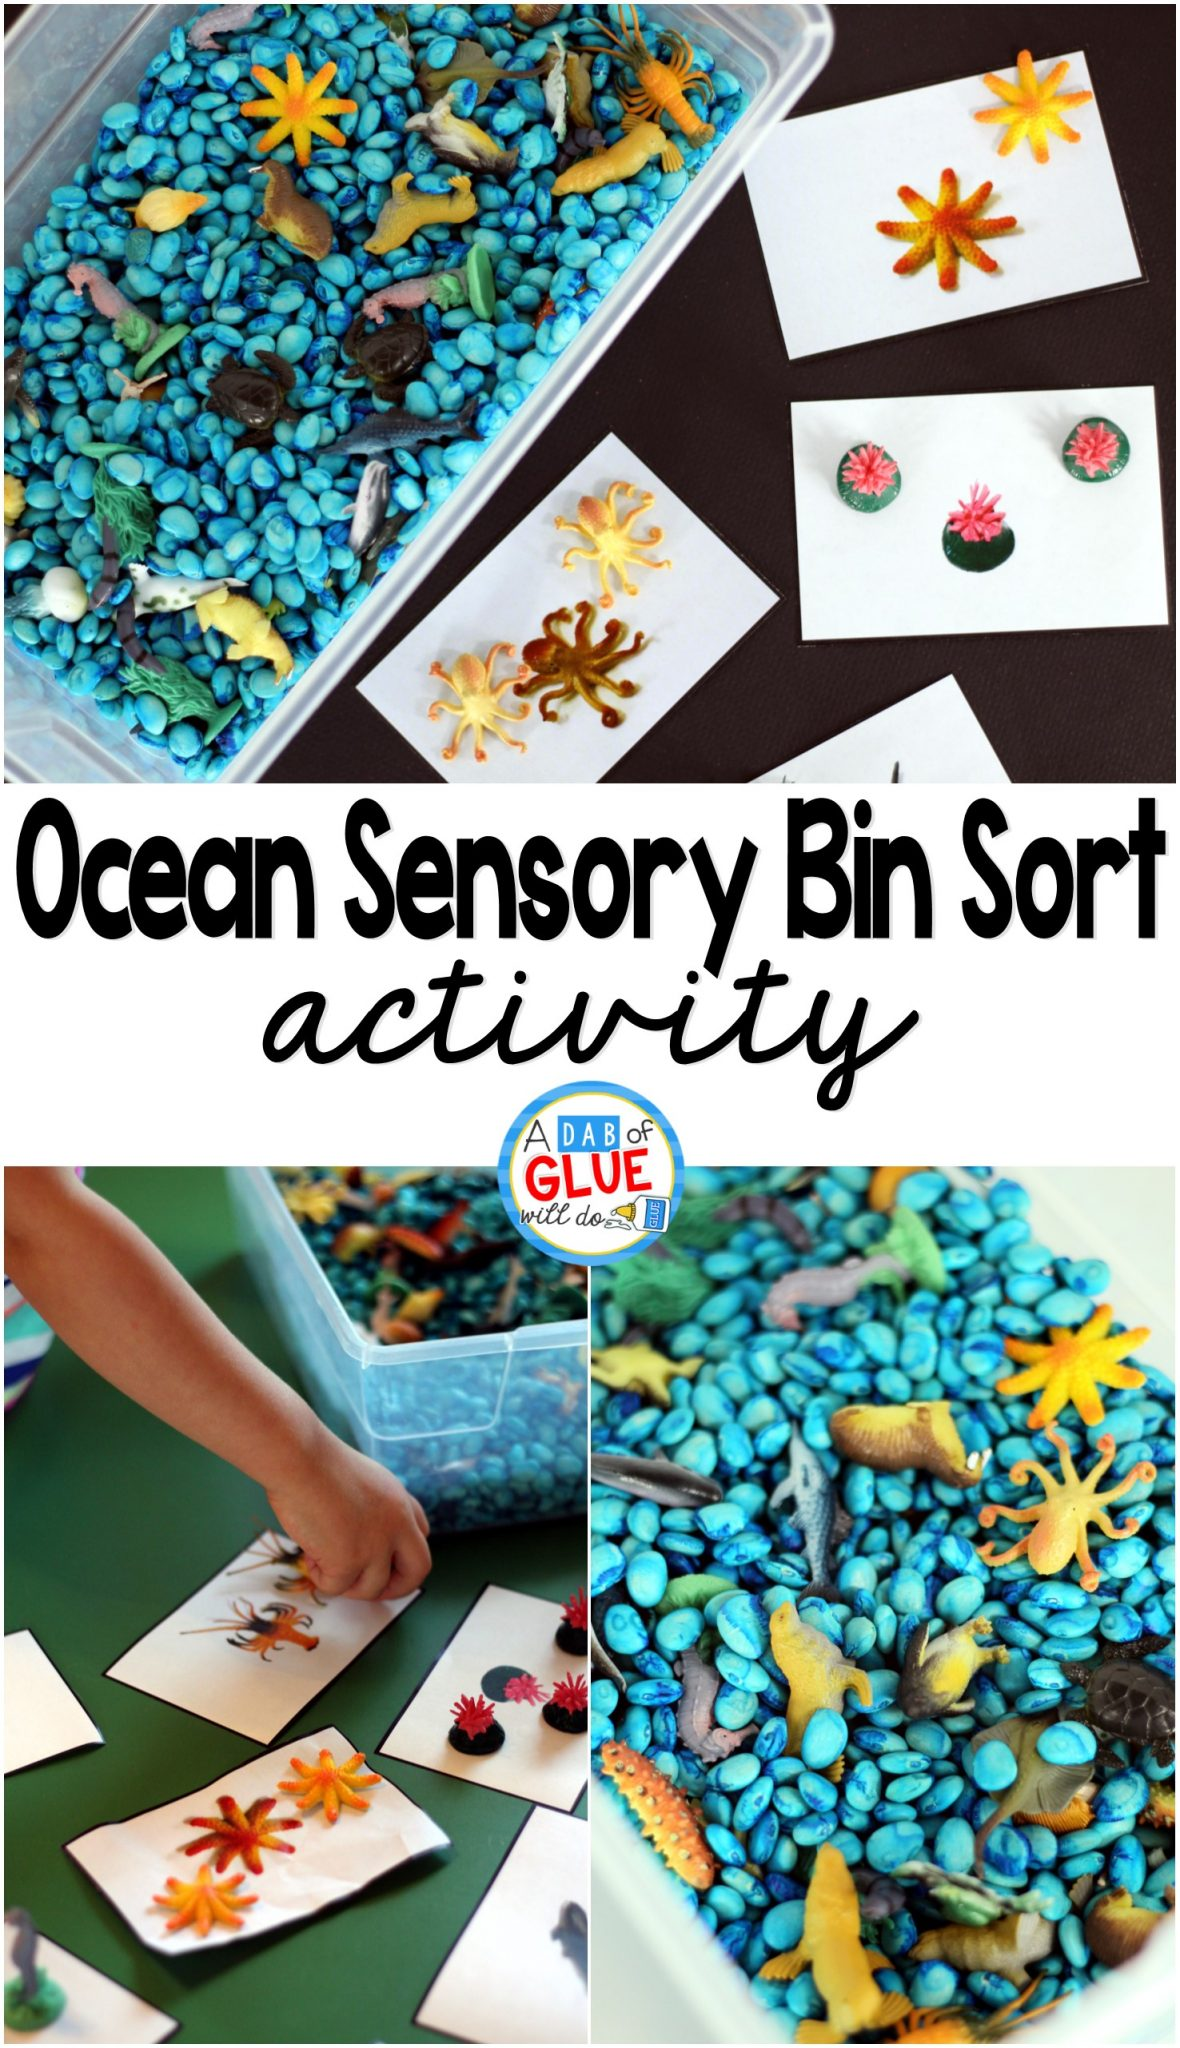 Ocean Sensory Bin Sorting Activity